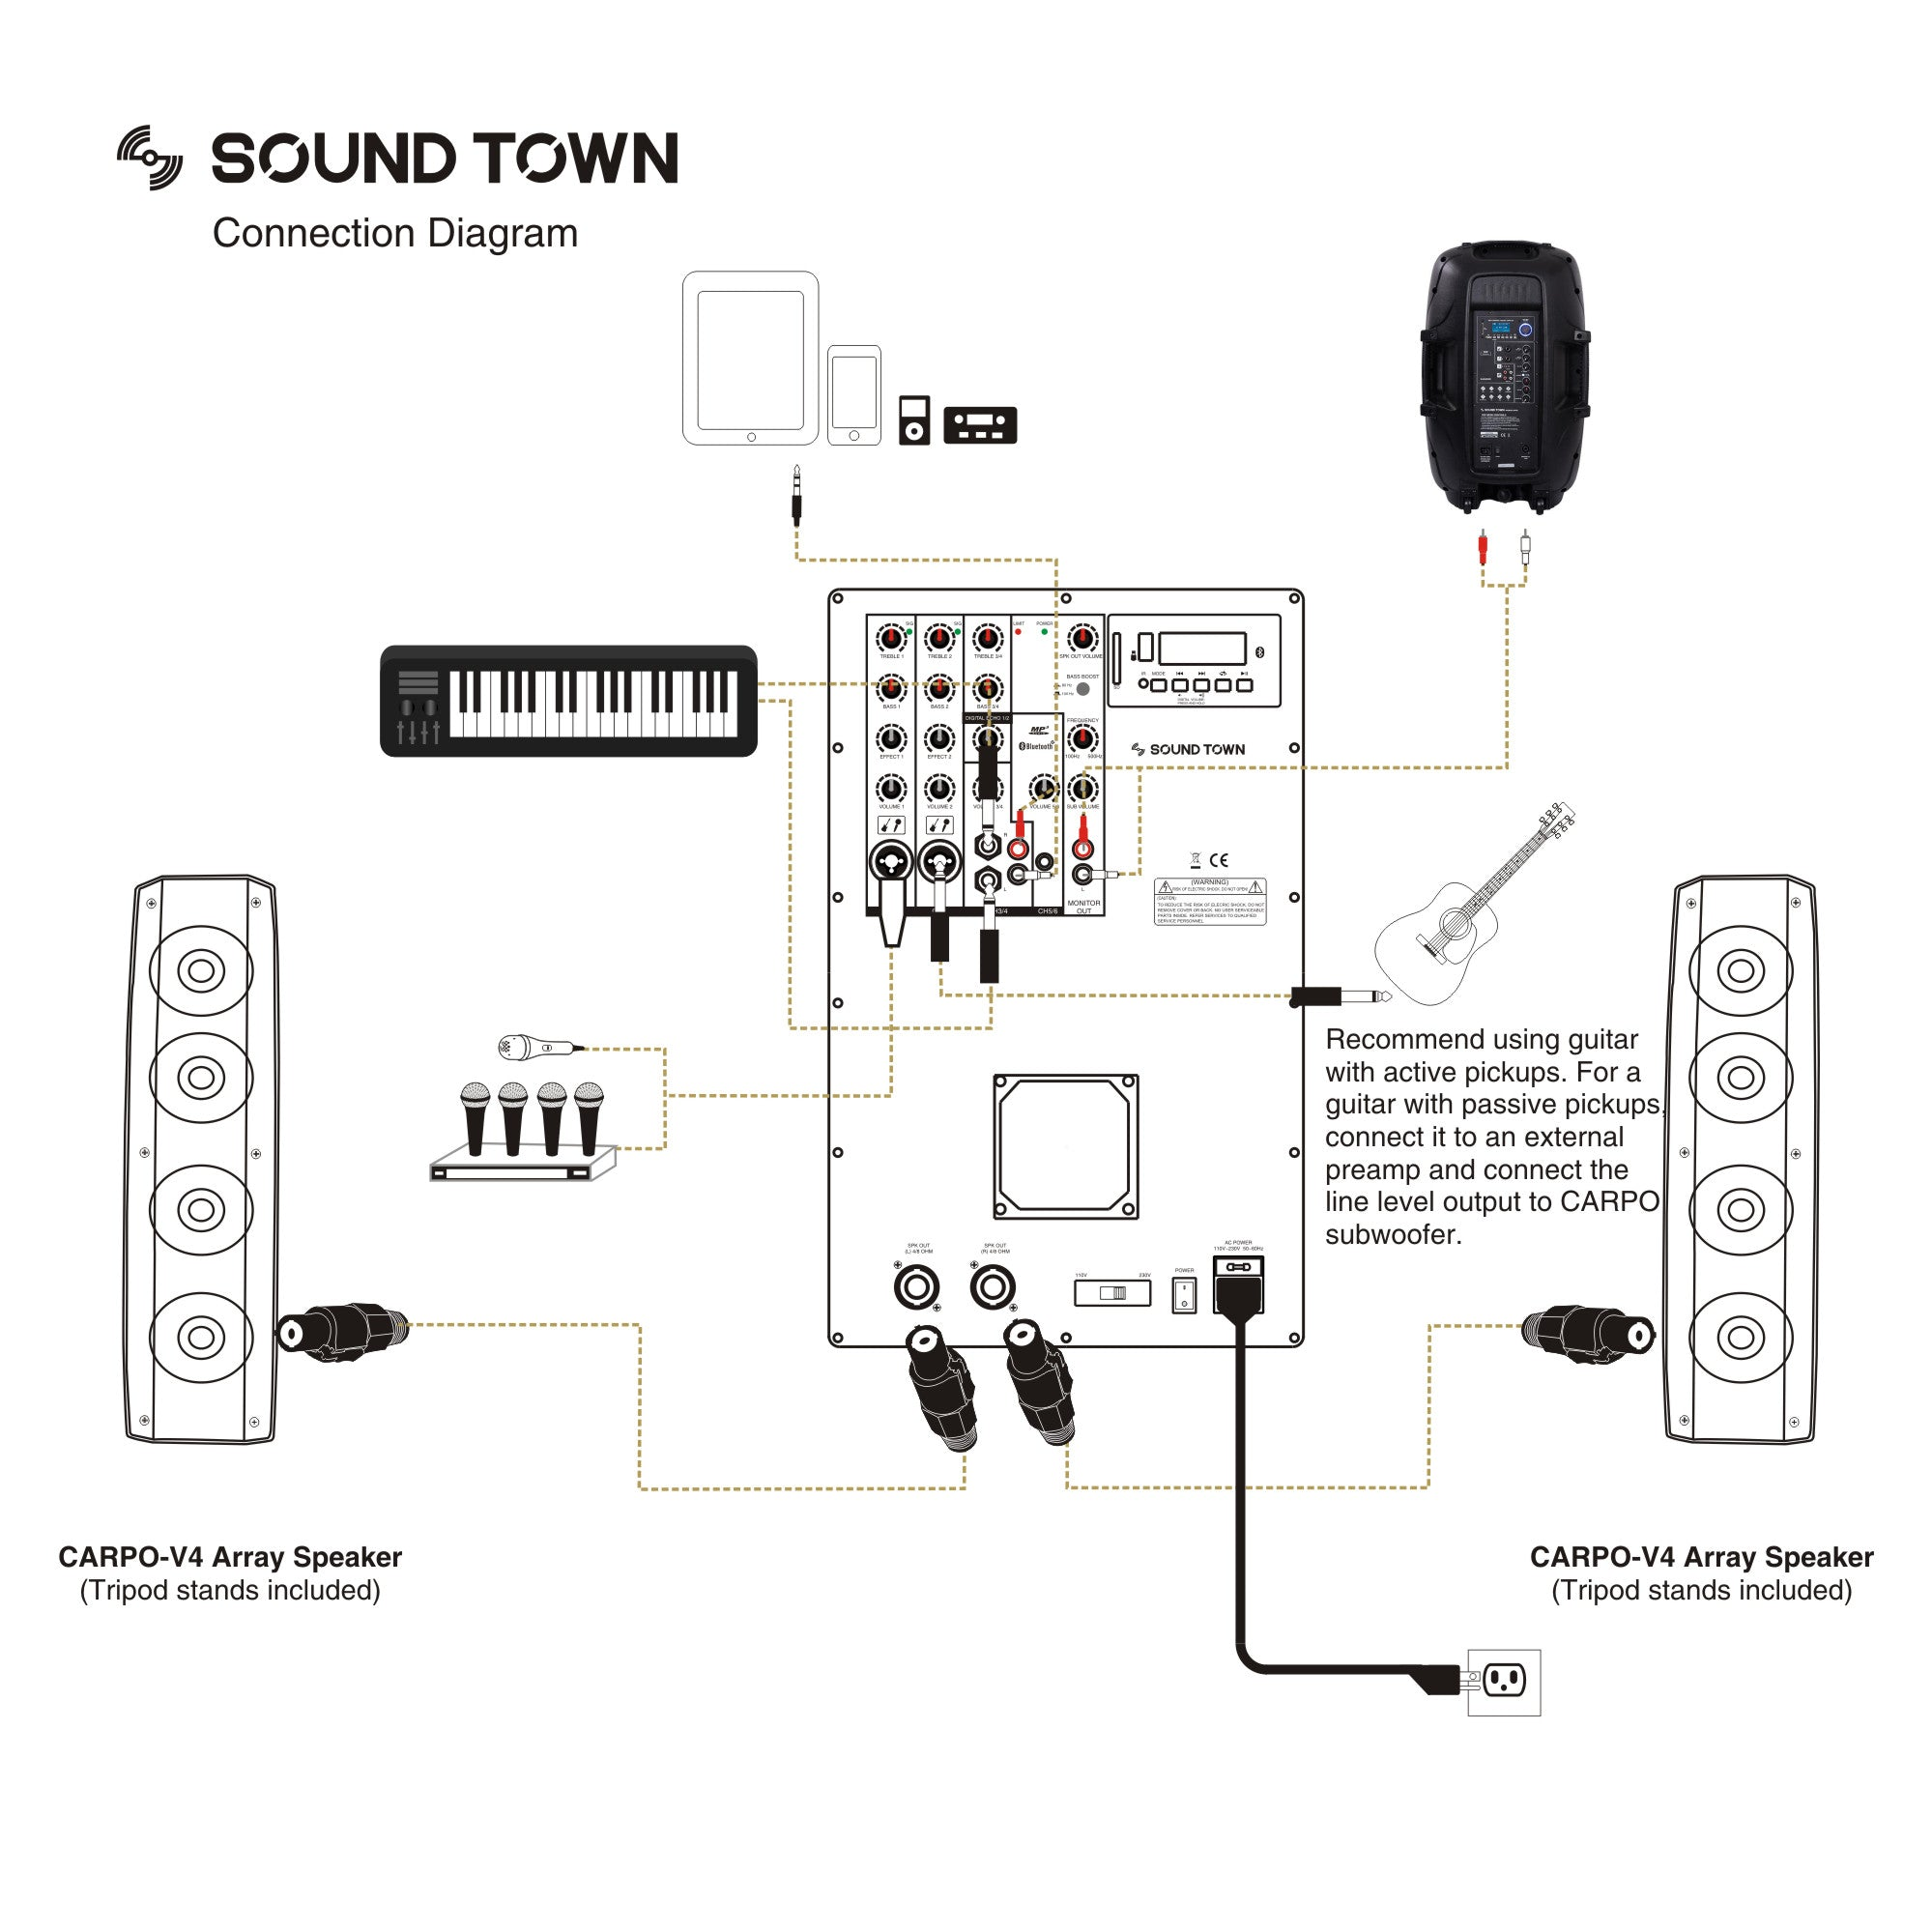 How to Connect Sound Town's CARPO-V412DS - the CARPO V4 and CARPO-12DSPW connection diagram